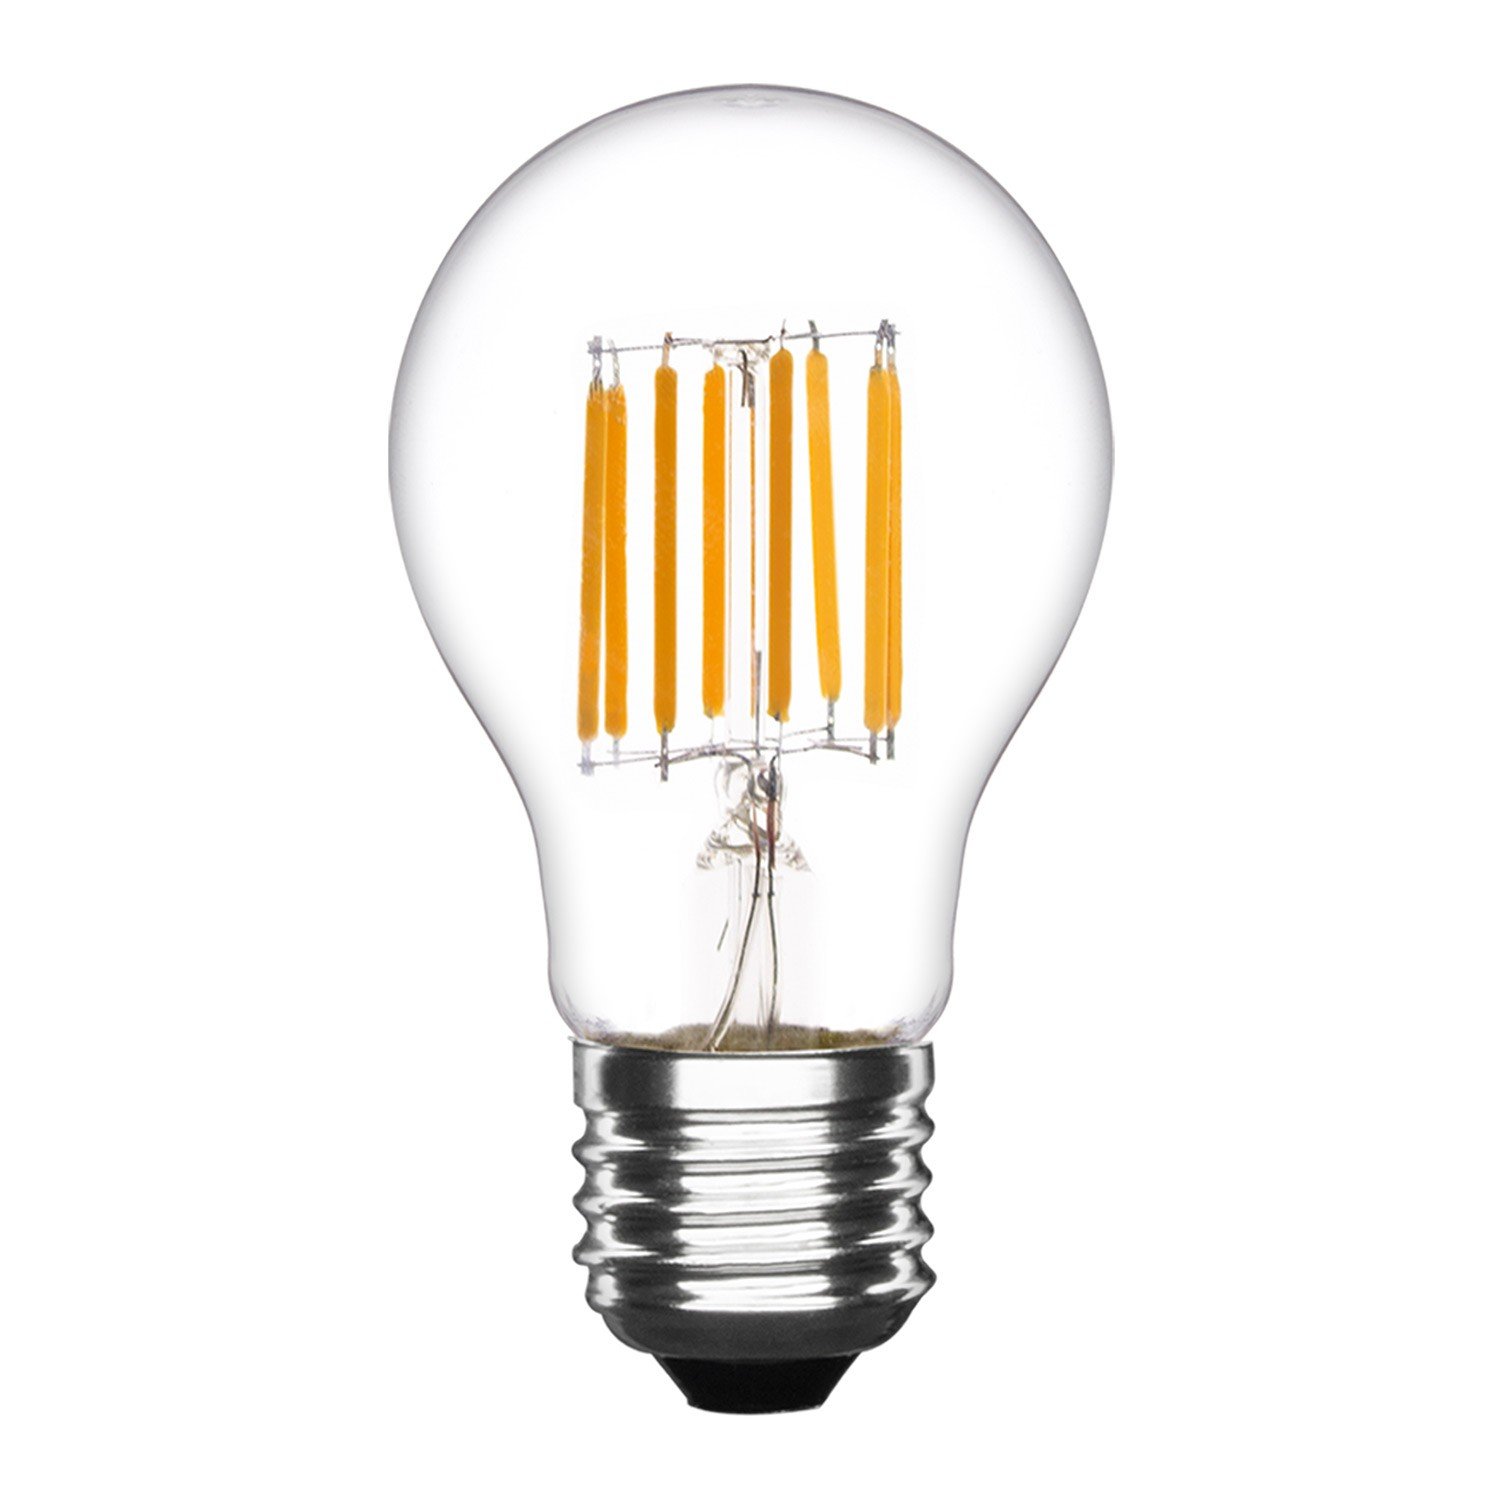 Stand Bulb, gallery image 1